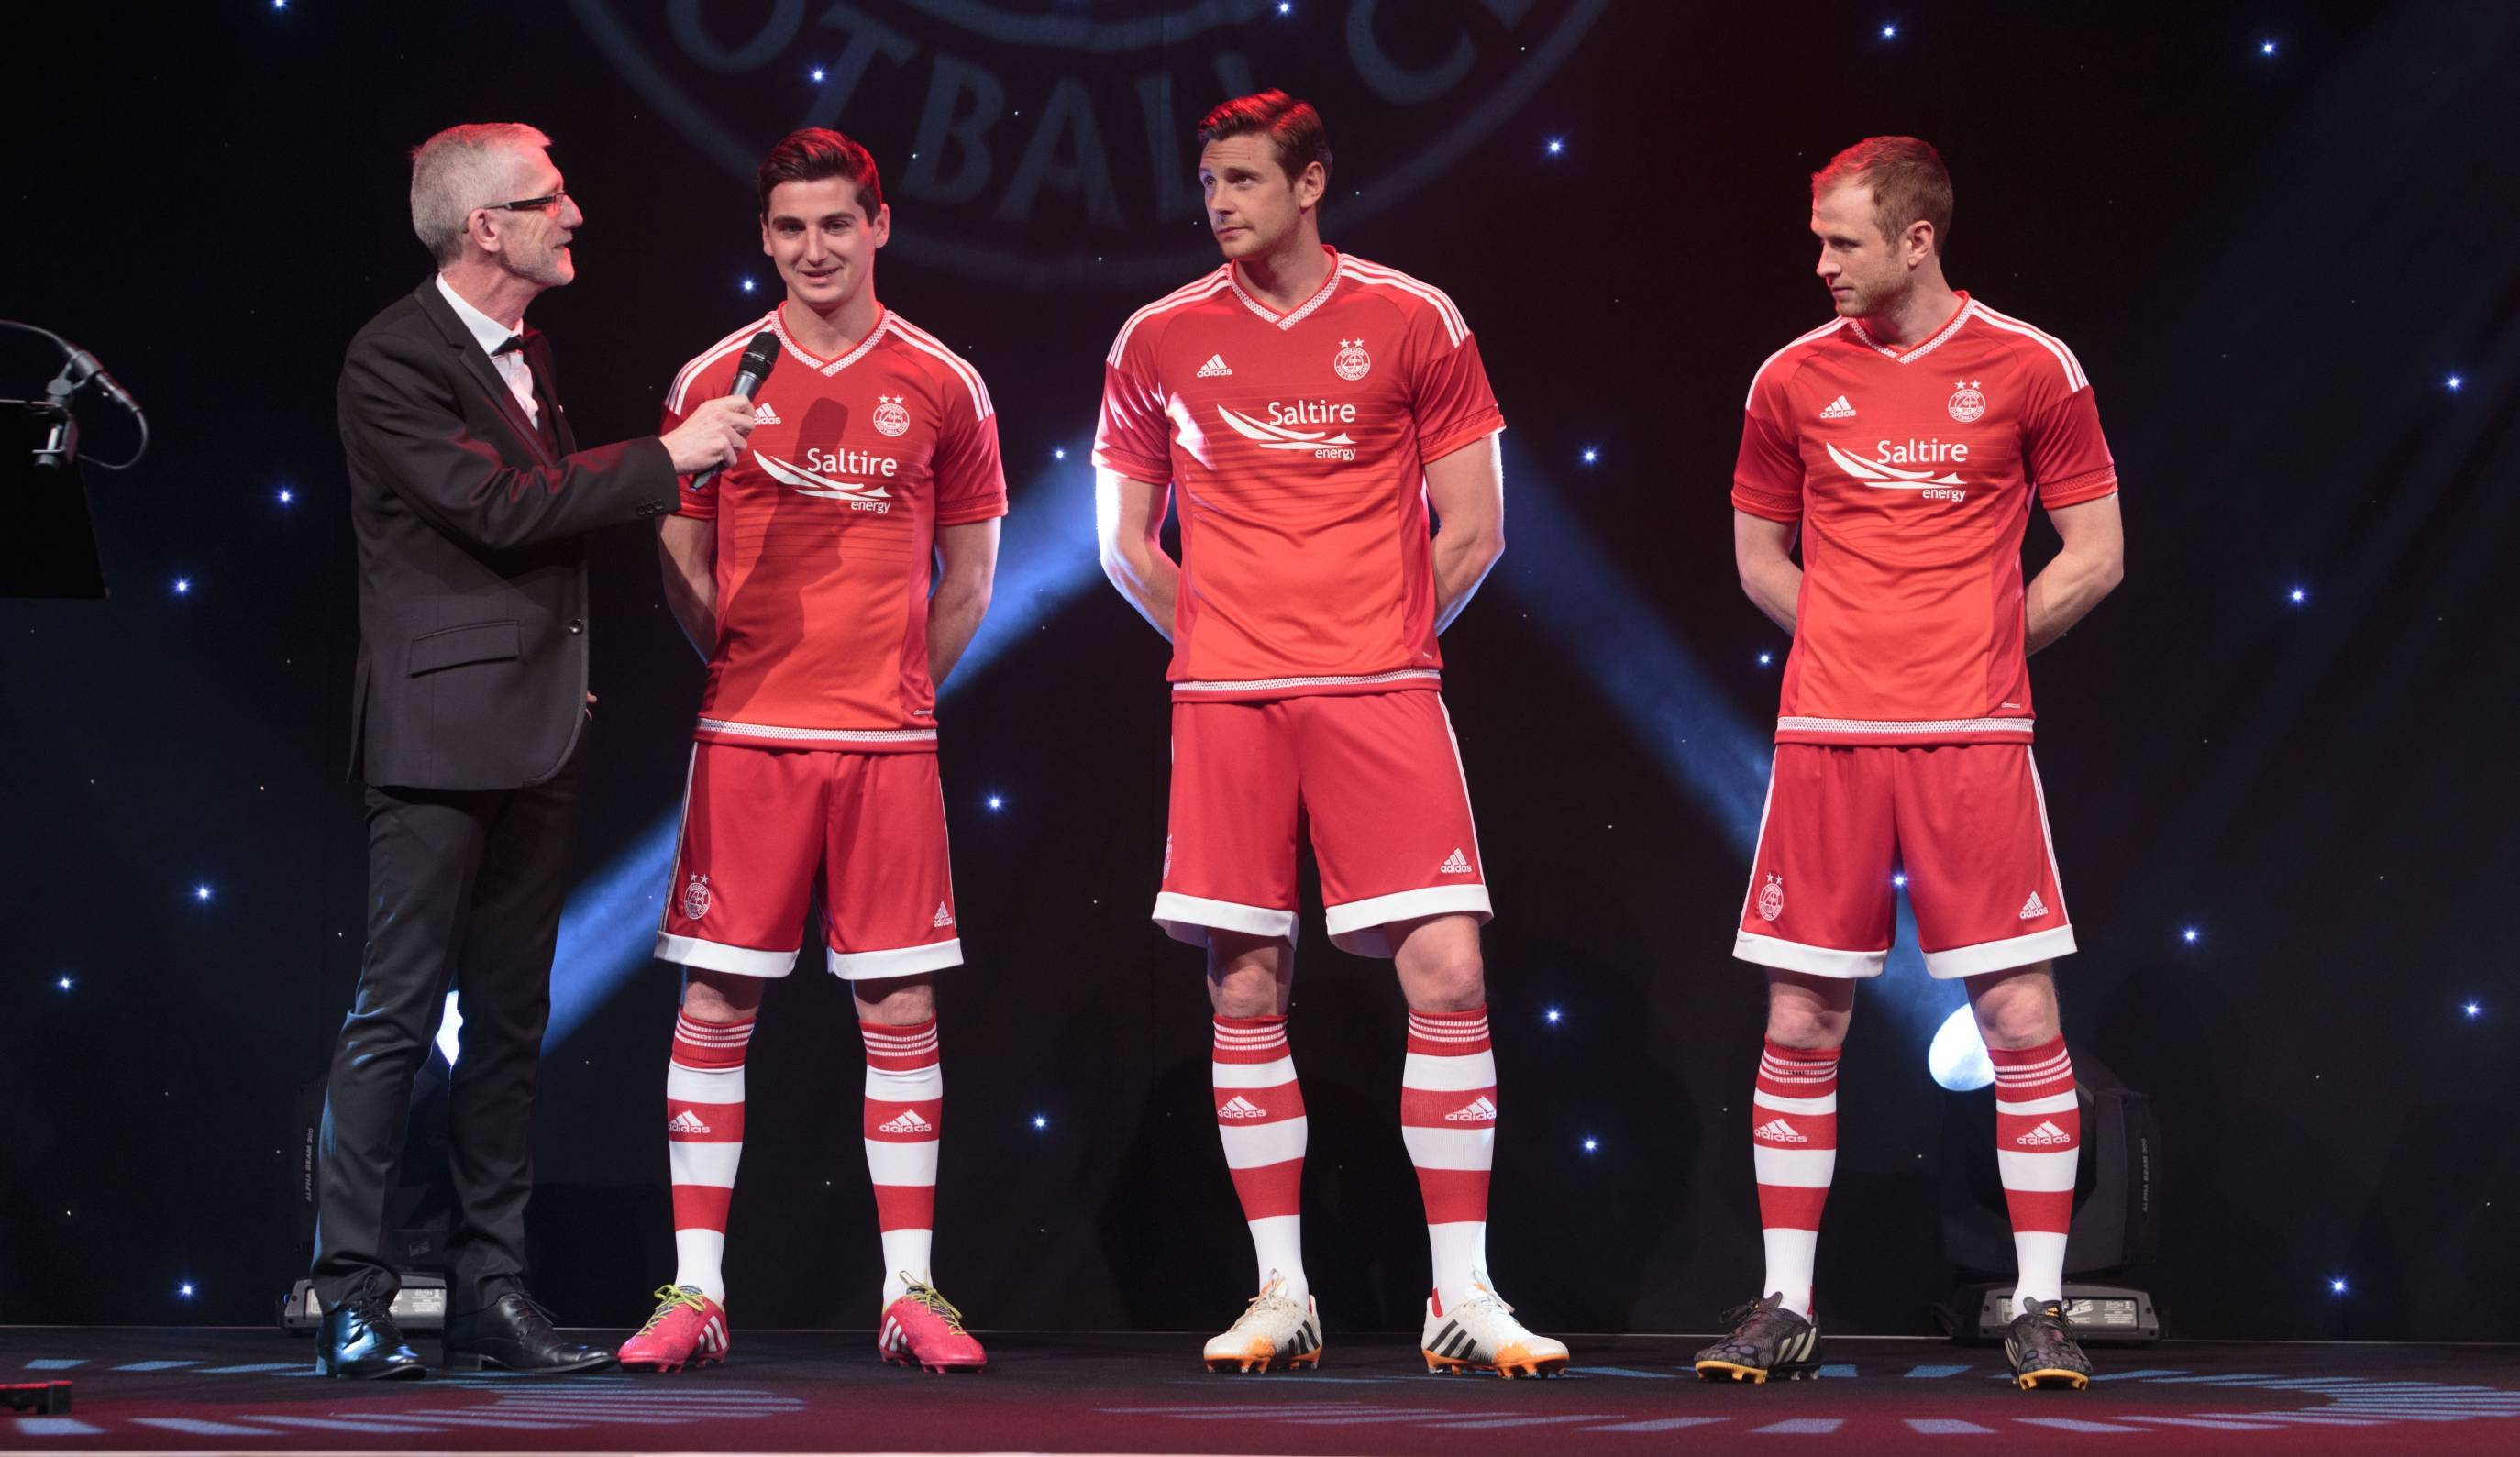 Kenny McLean, Ash Taylor and Mark Reynolds presented the new kit at the AECC